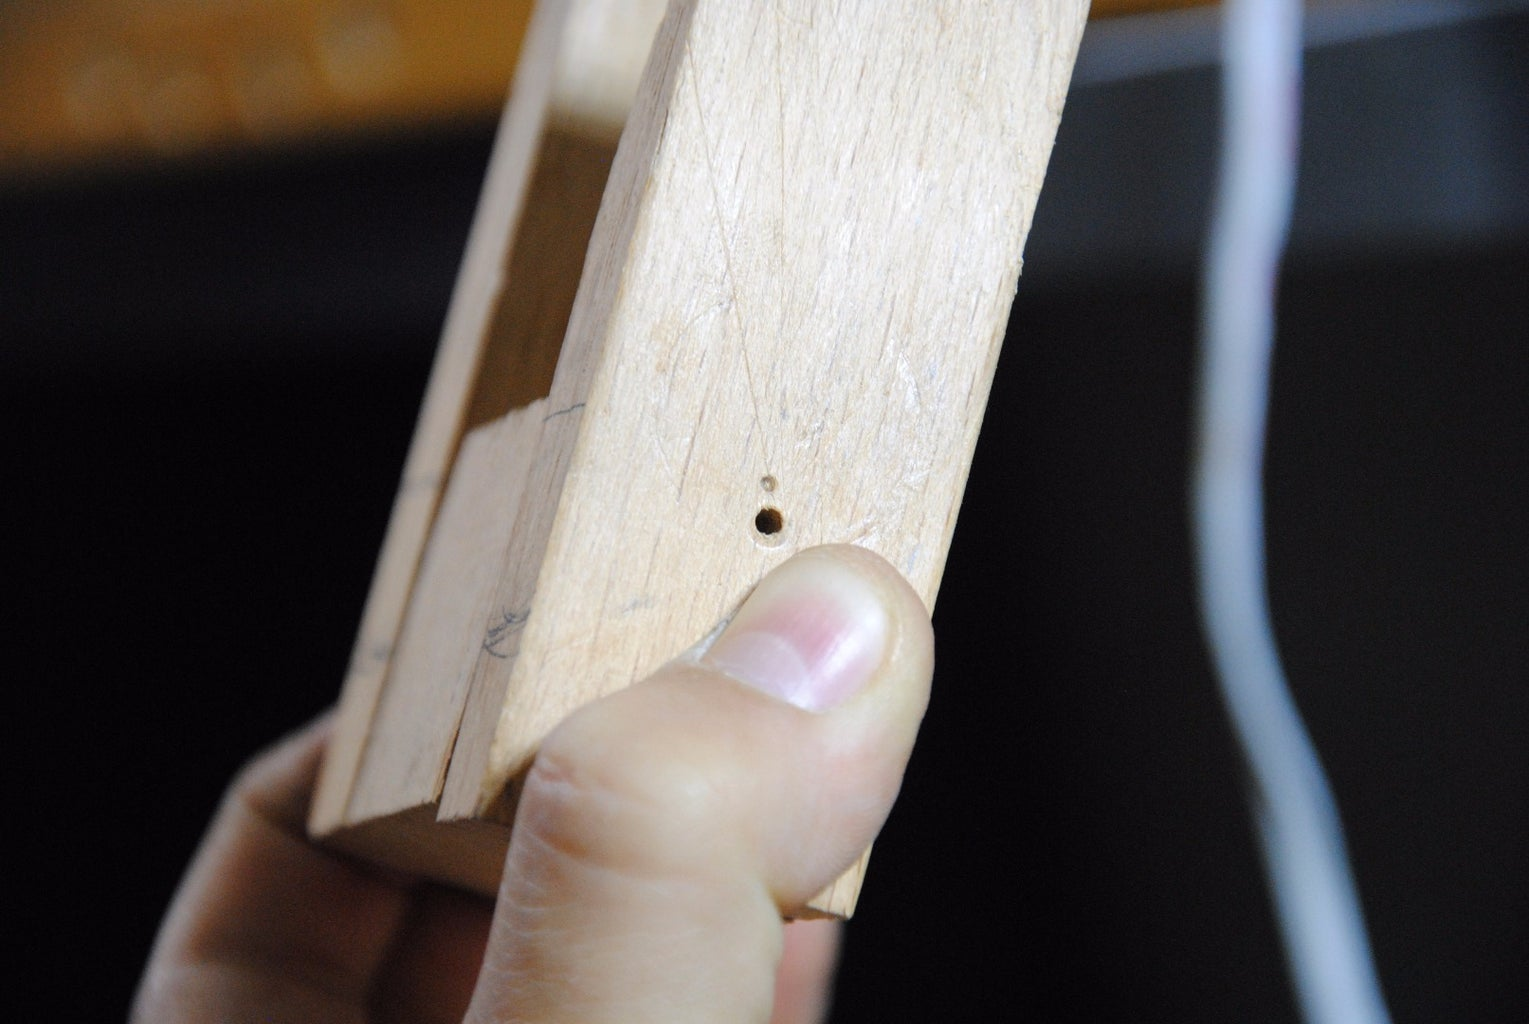 Making the Clamp's Body- Part 1: Drilling